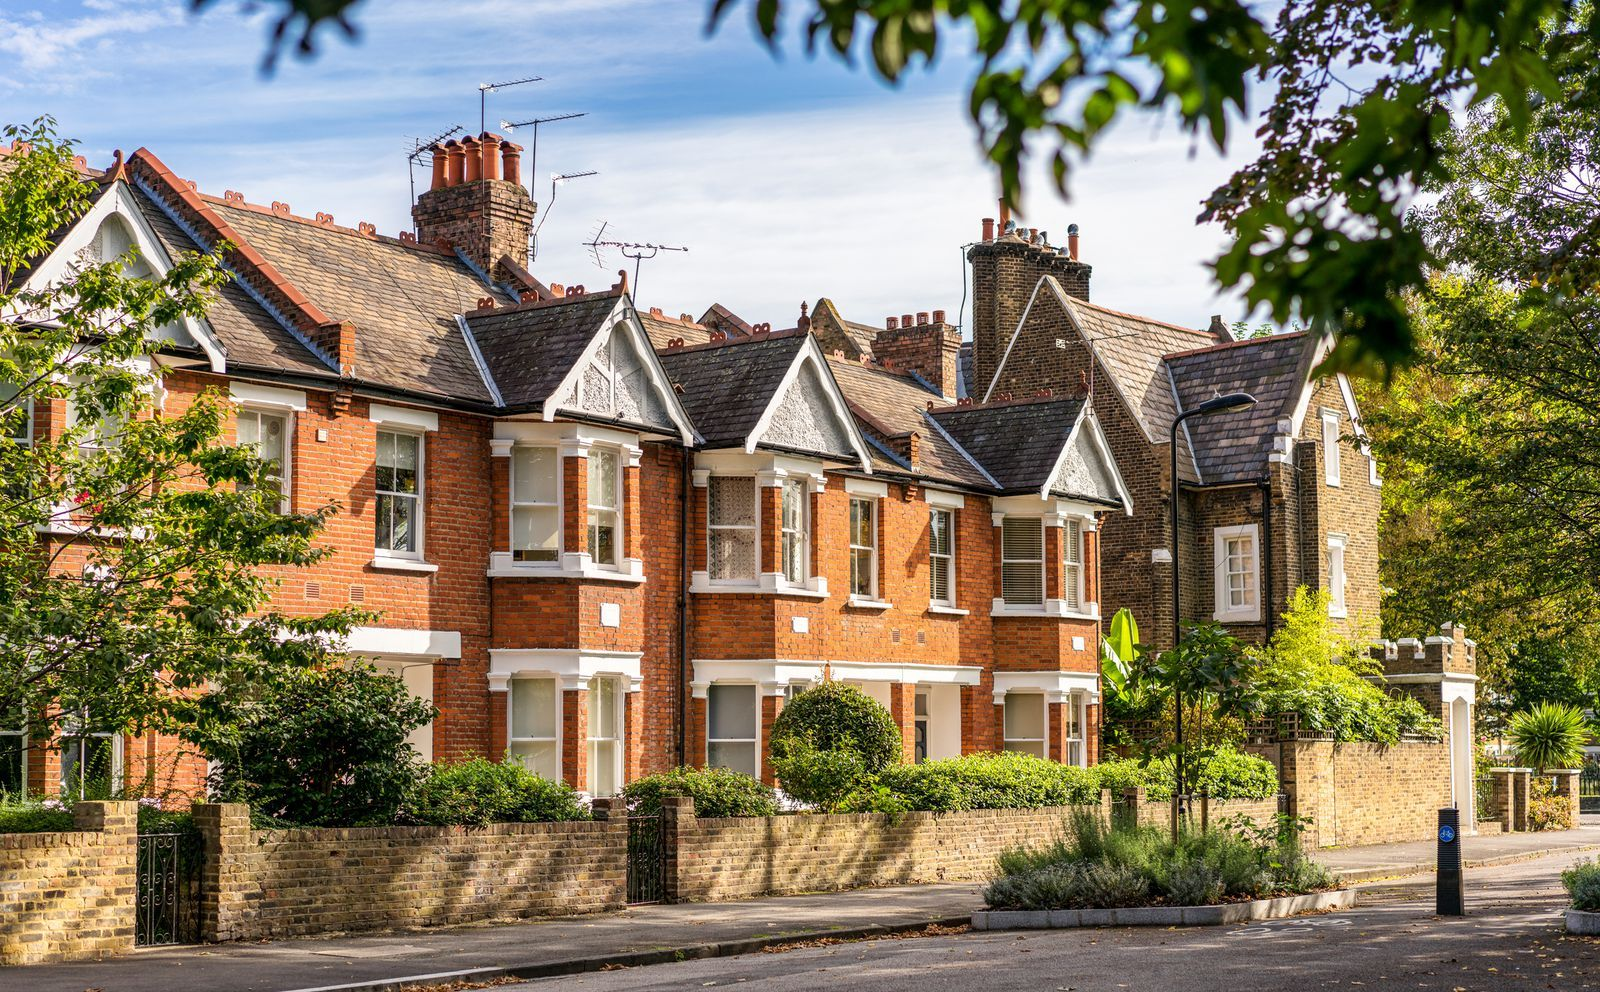 Average House Price In London Uk Revealed In New Government Data